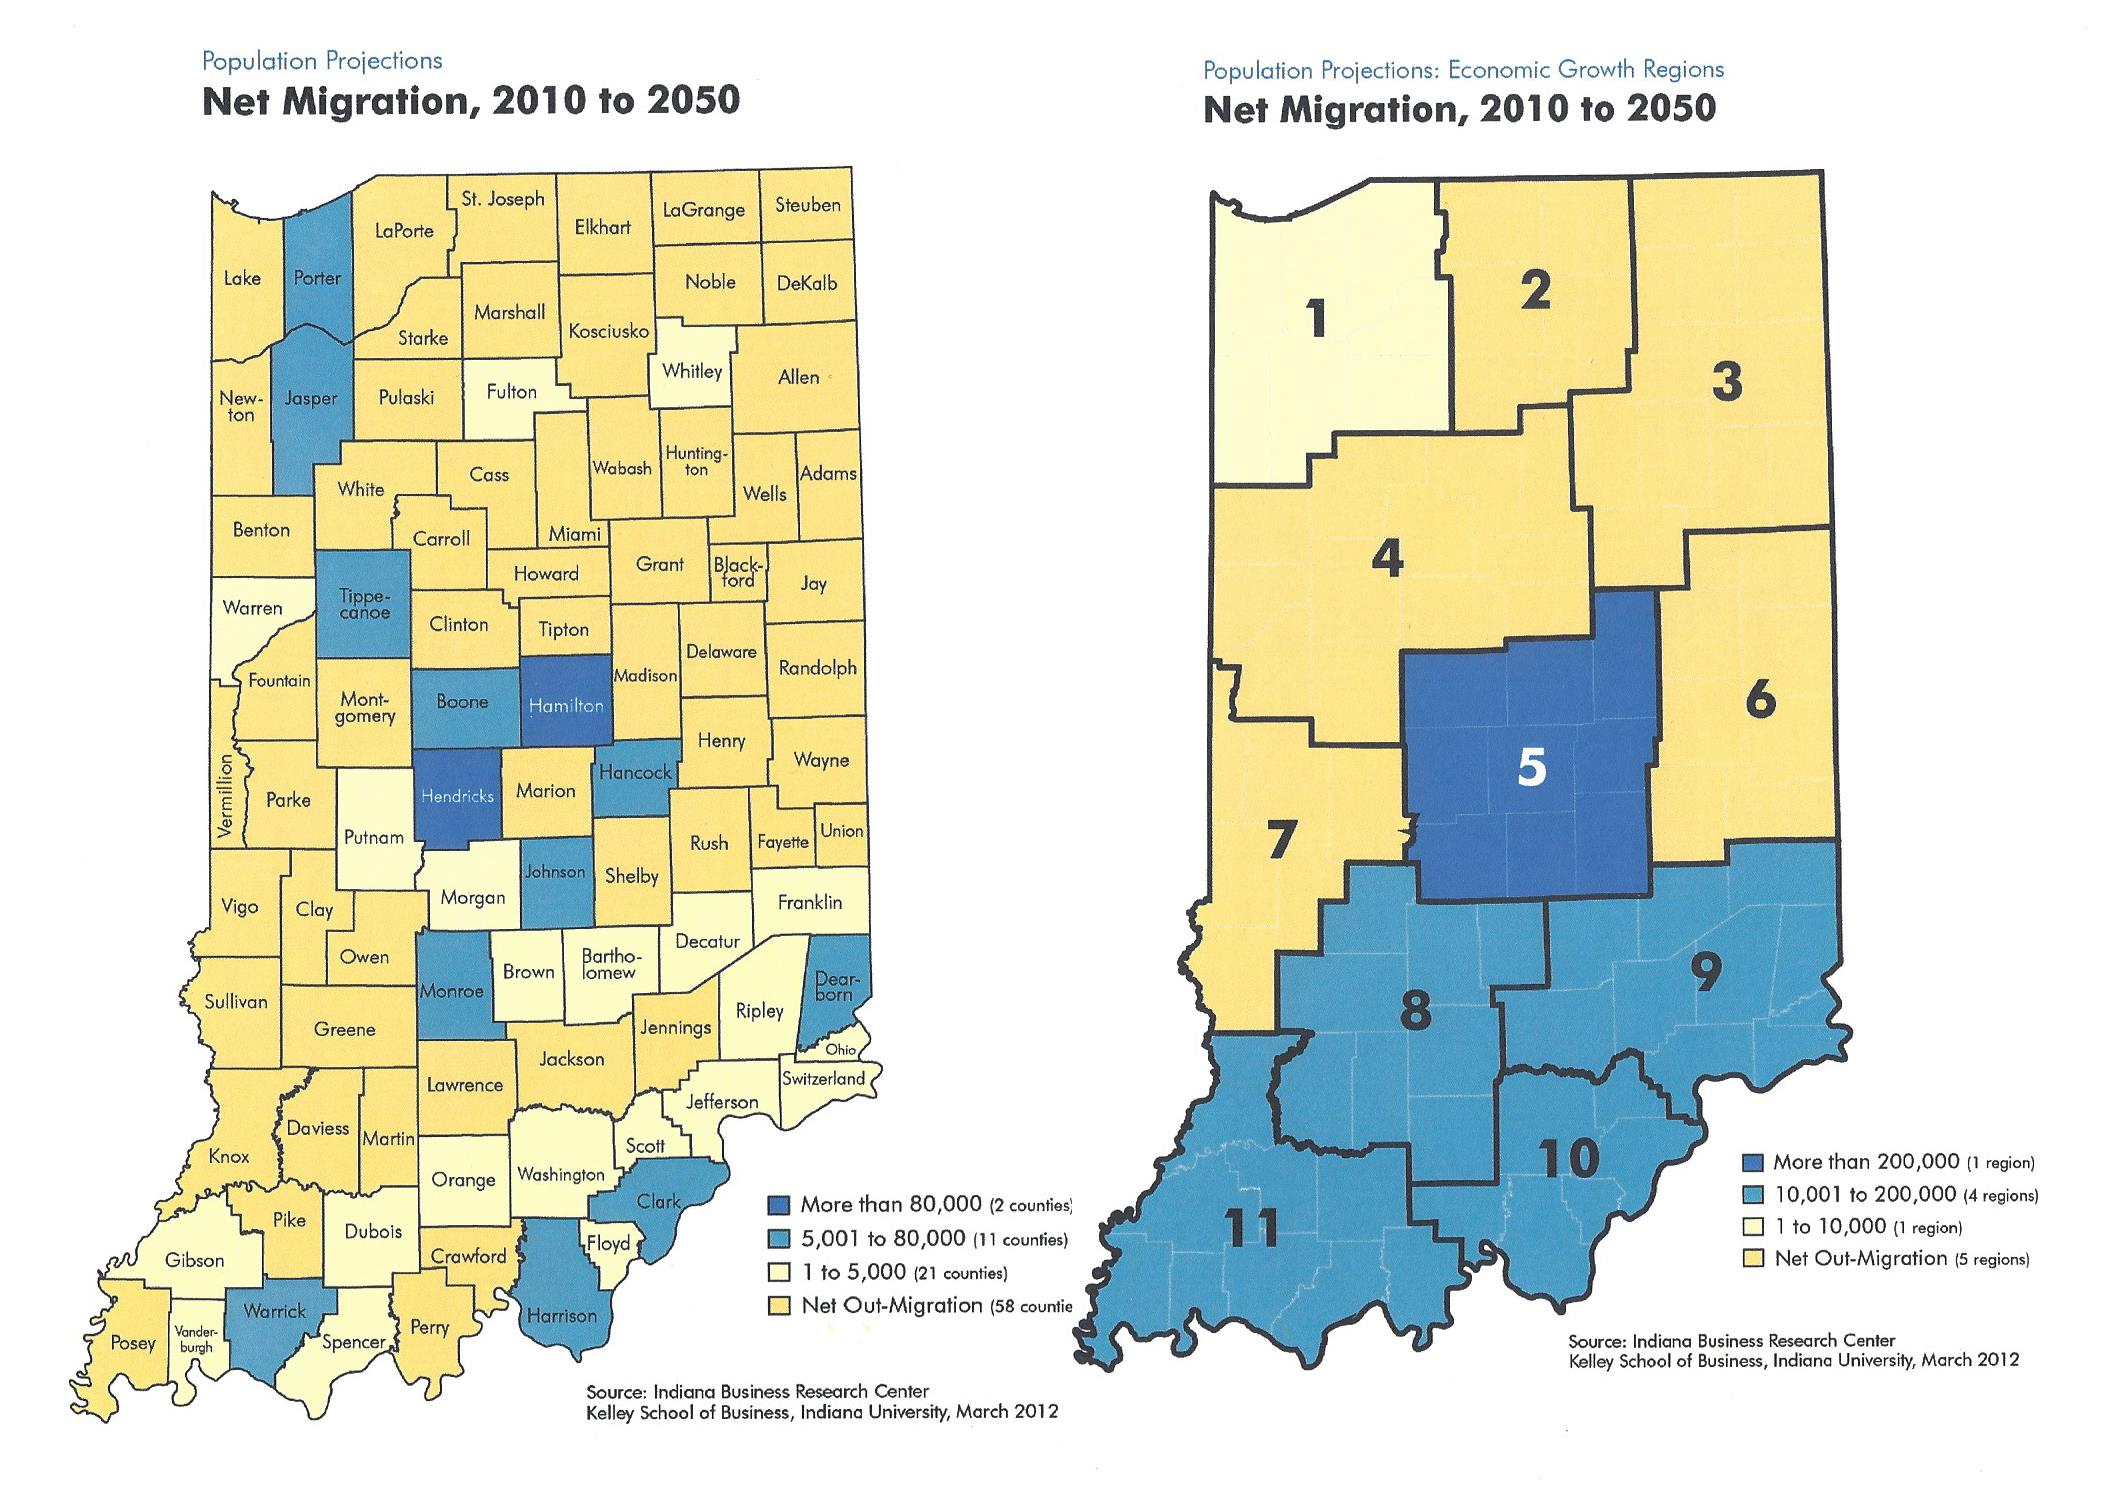 Indiana Net Migration by County